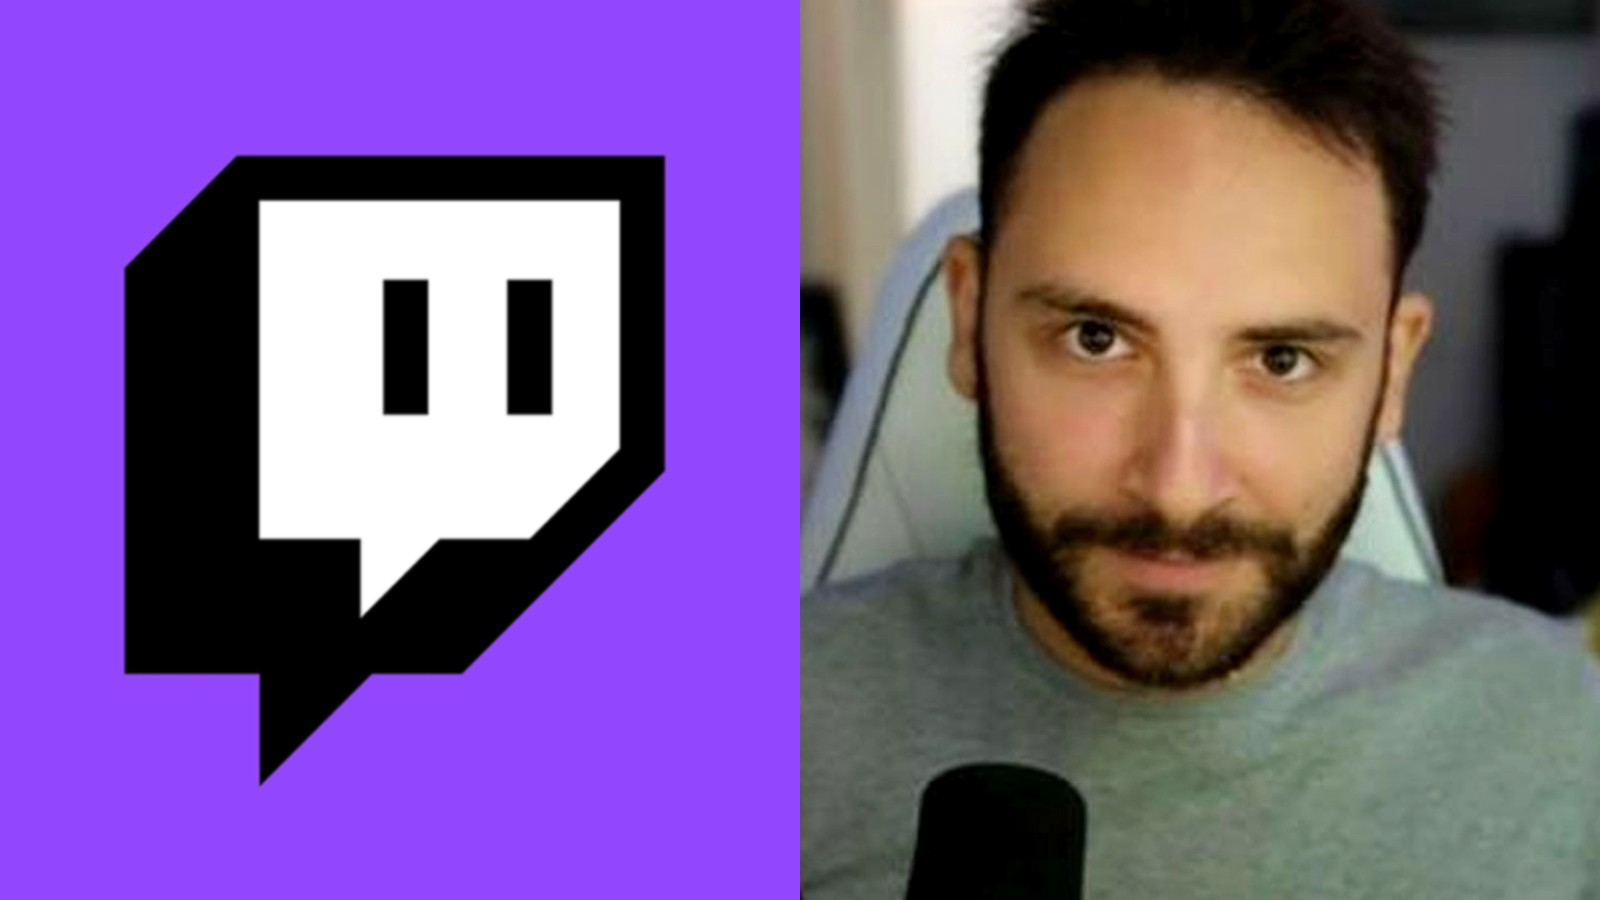 Image of the Twitch logo alongside Reckful